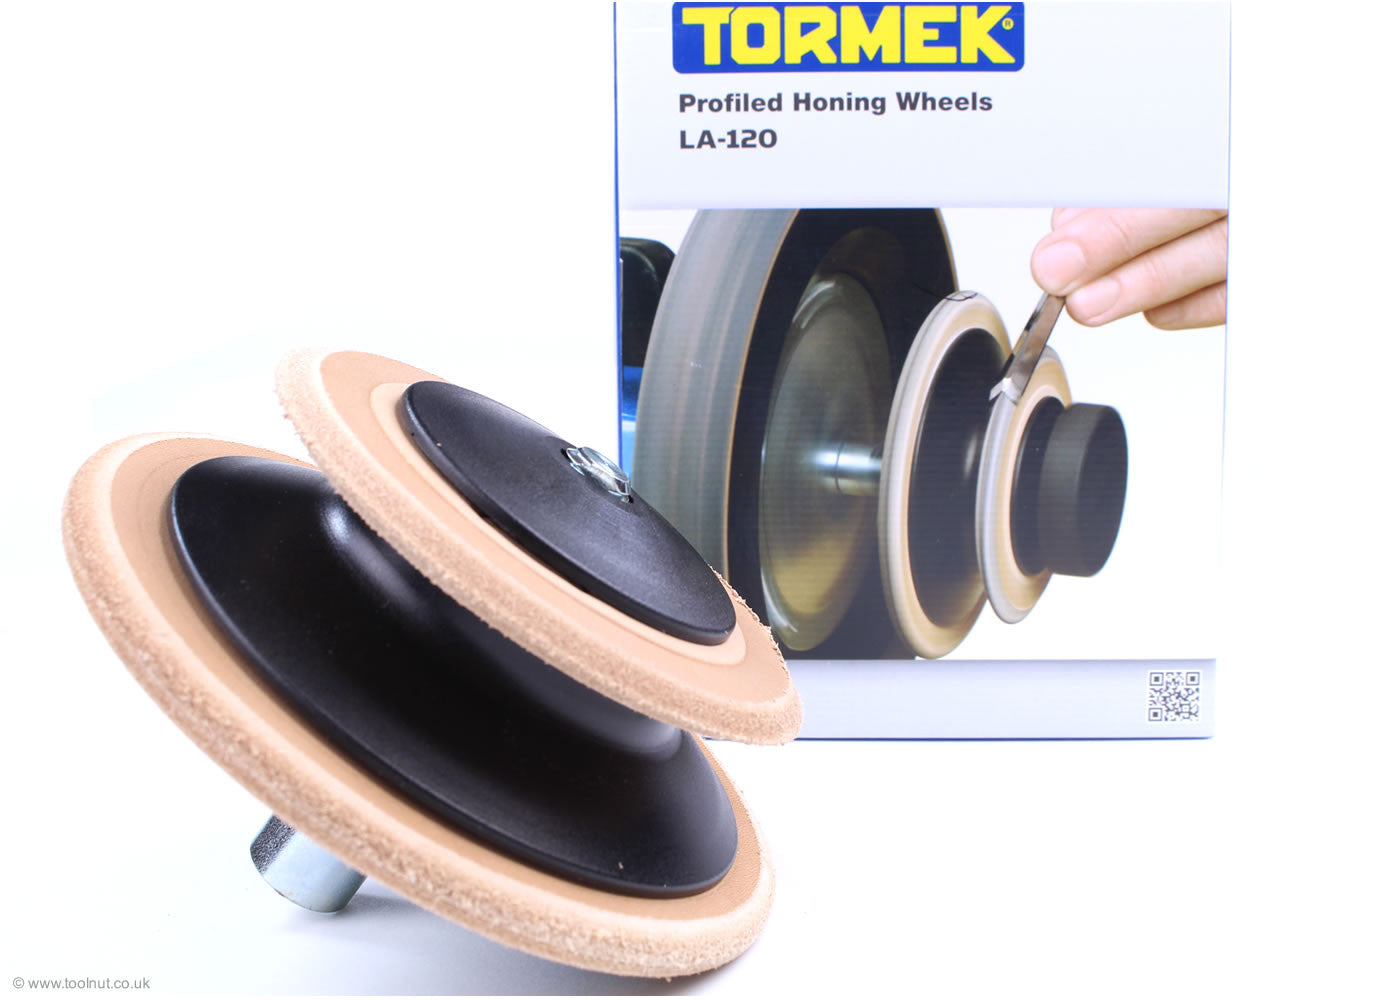 Tormek Profiled Leather Honing Wheel - LA-120